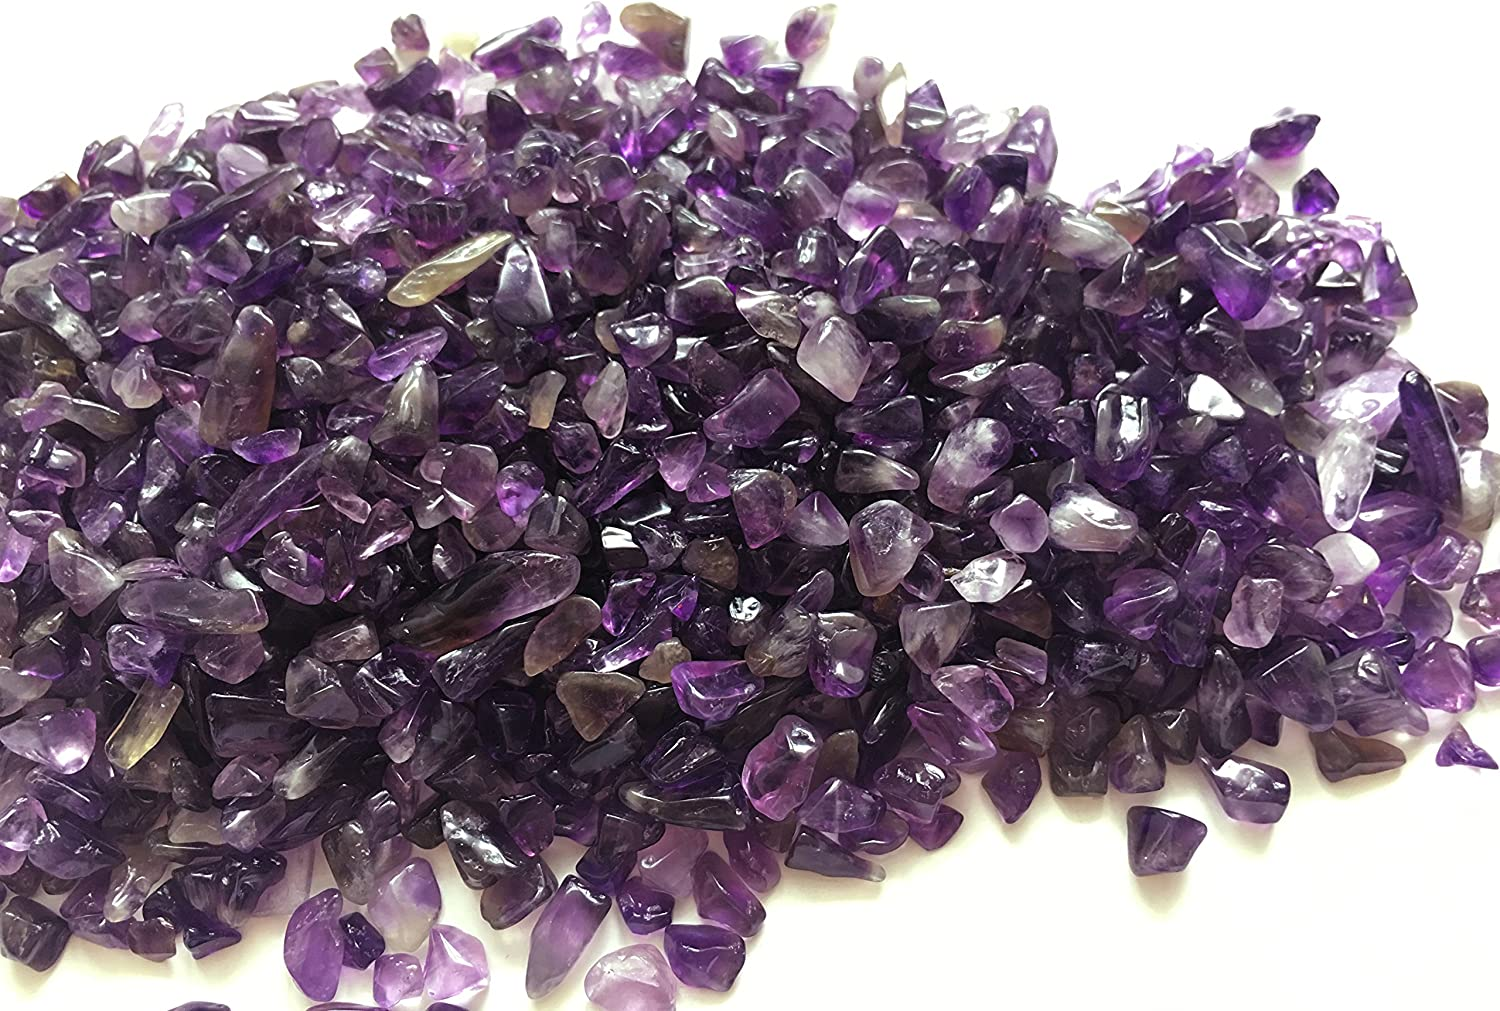 Zungtin 1 lb Amethyst Small Tumbled Chips Crushed Stone Healing Reiki Crystal Jewelry Making Home Decoration